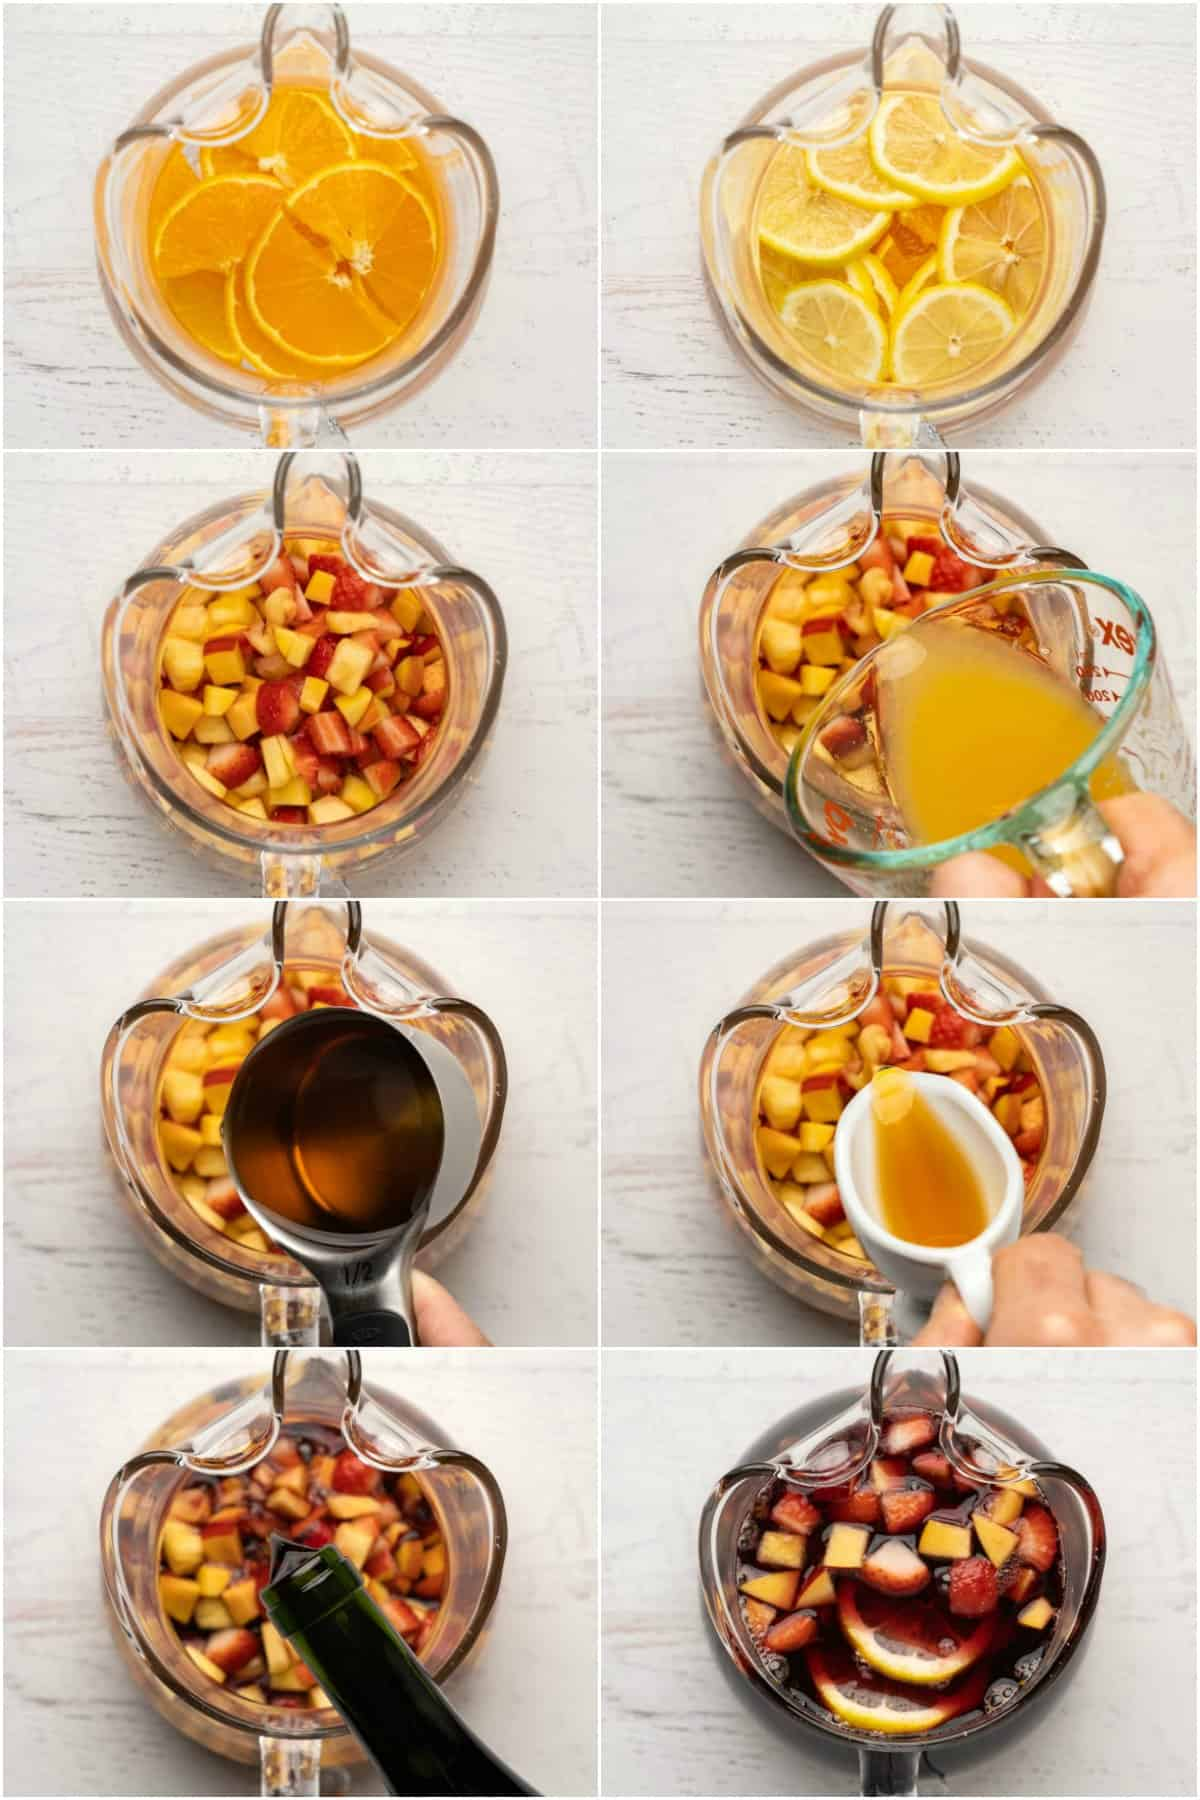 Step by step process photo collage of making sangria.